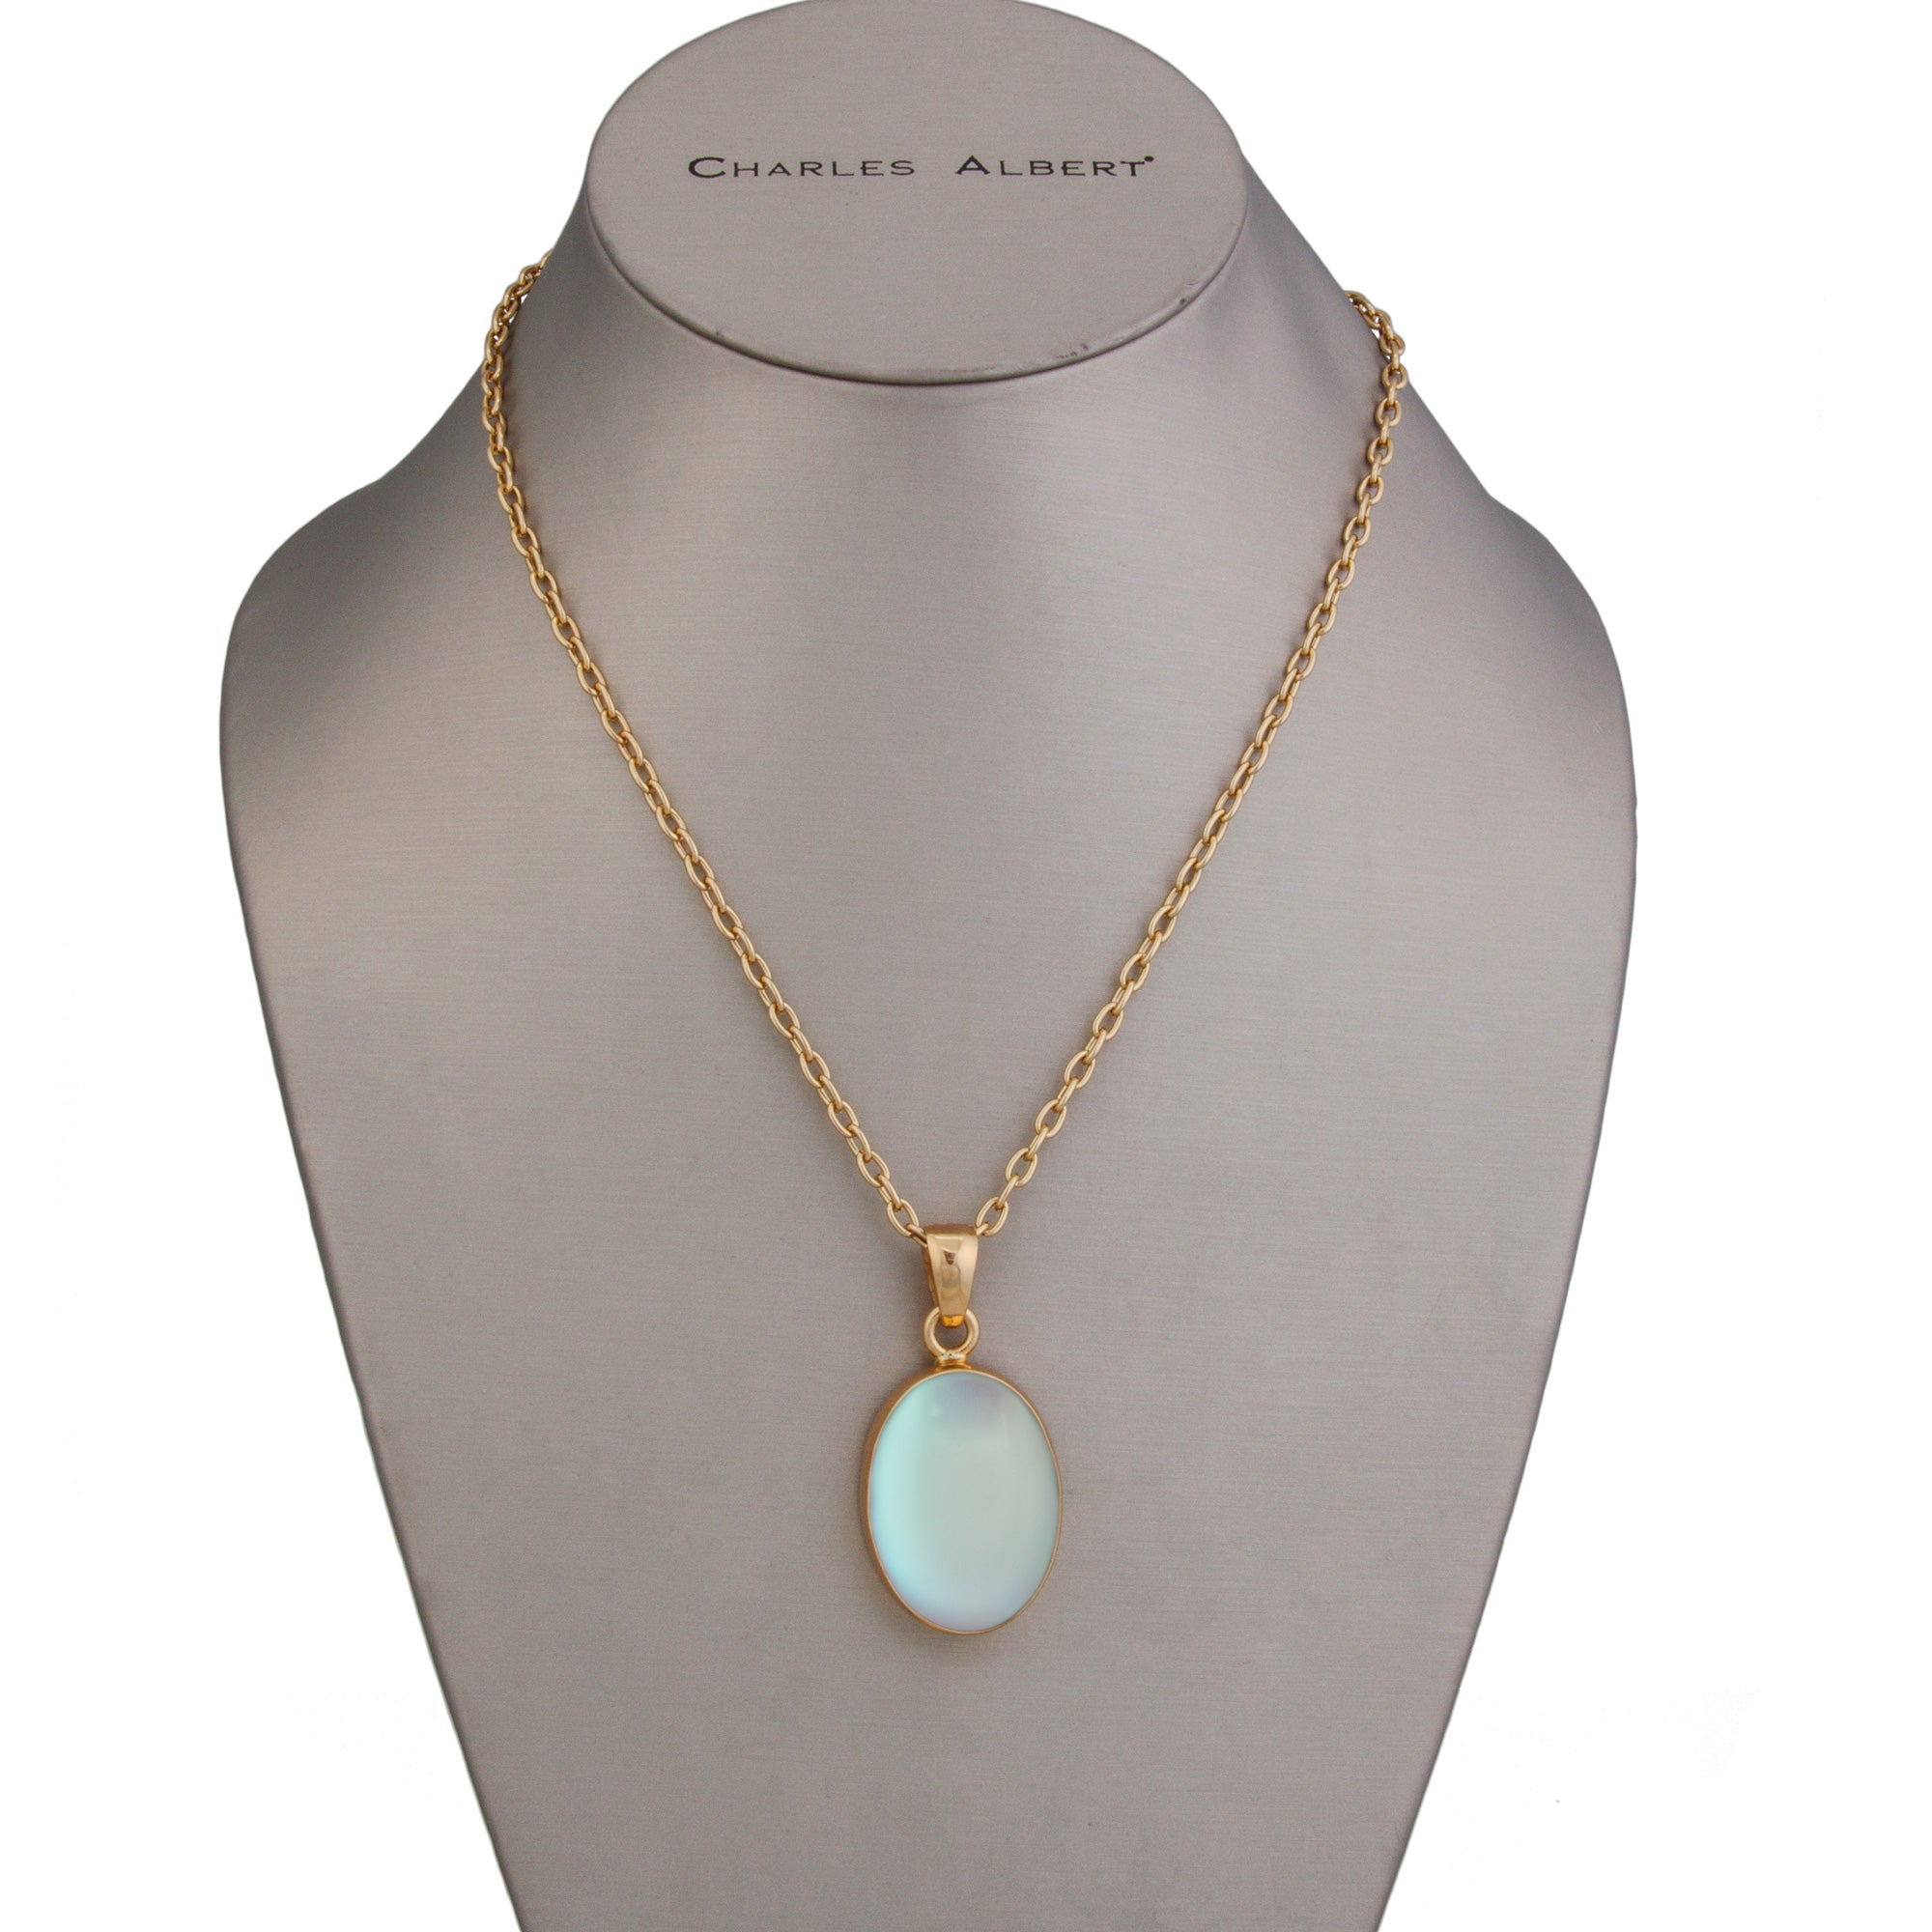 Alchemia Oval Luminite Pendant | Charles Albert Jewelry